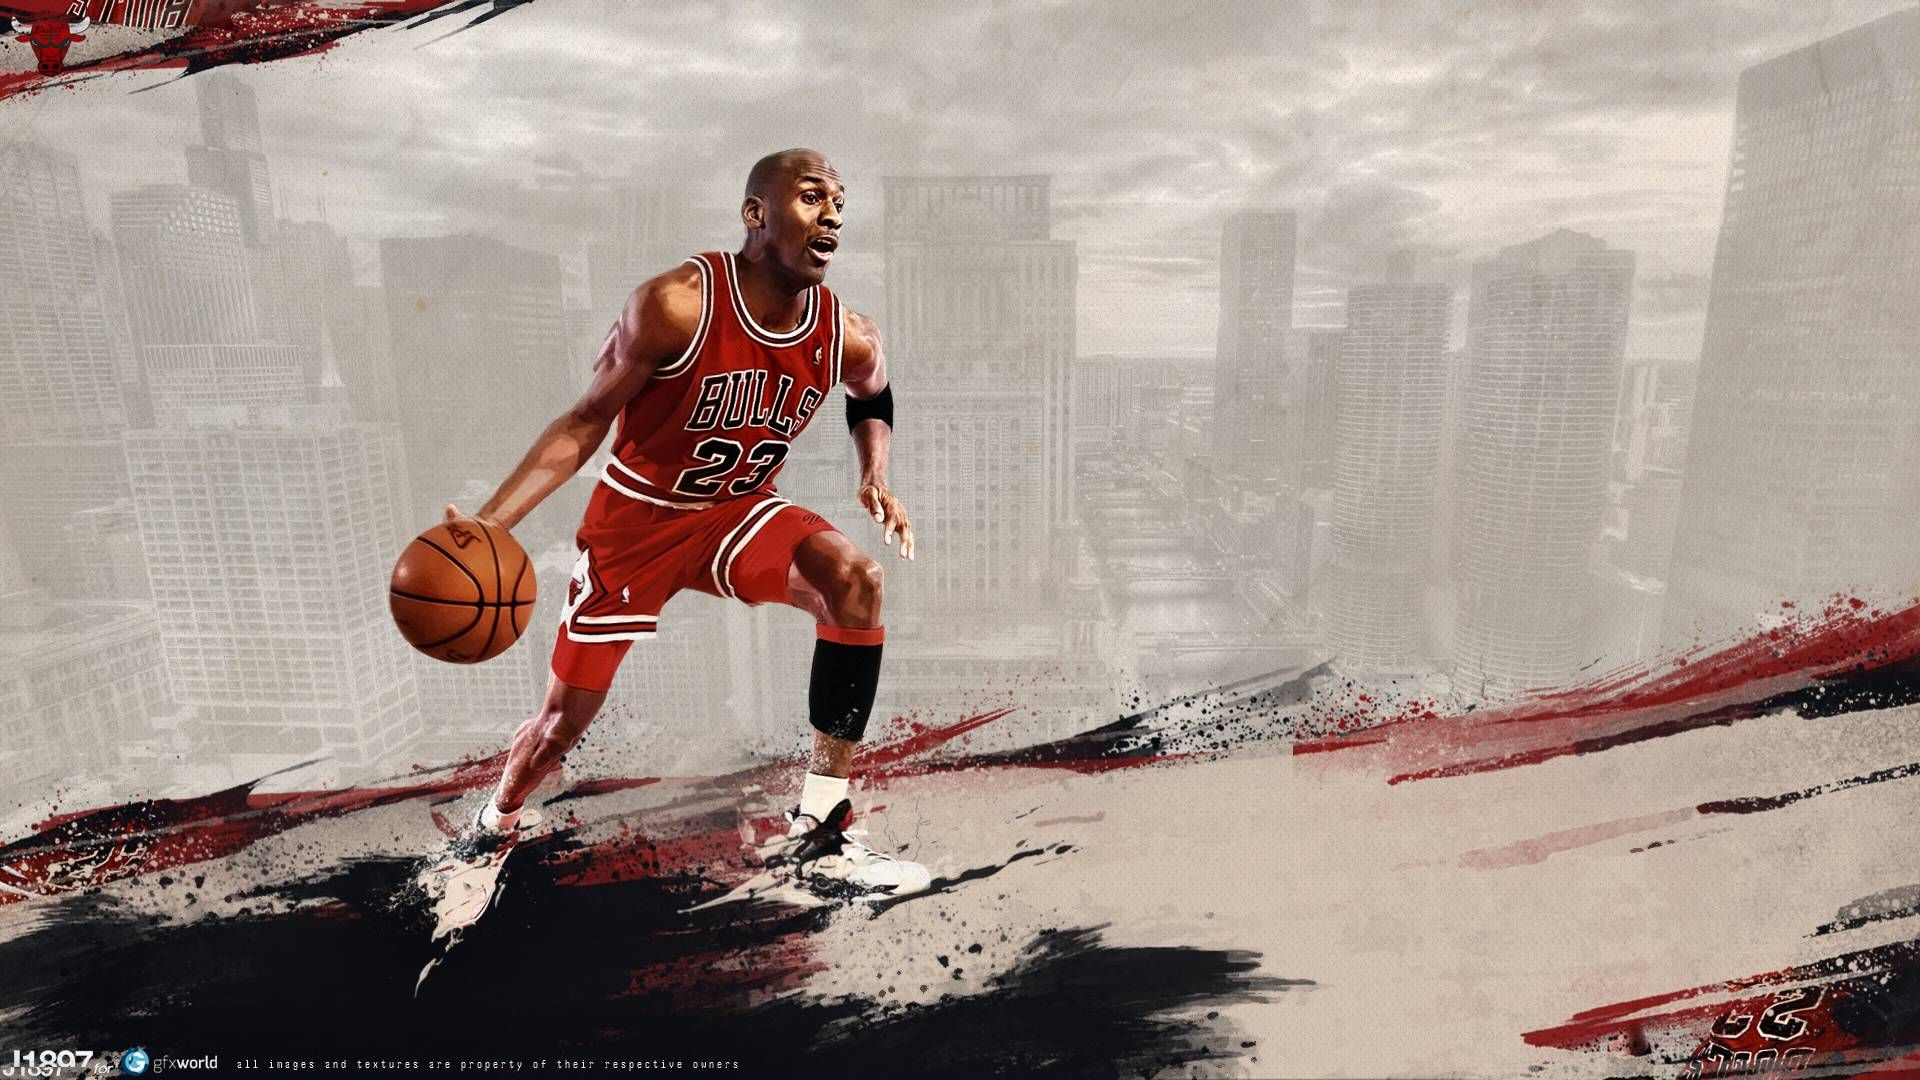 Air Jordan Hd Wallpapers Flip Wallpapers Download Free